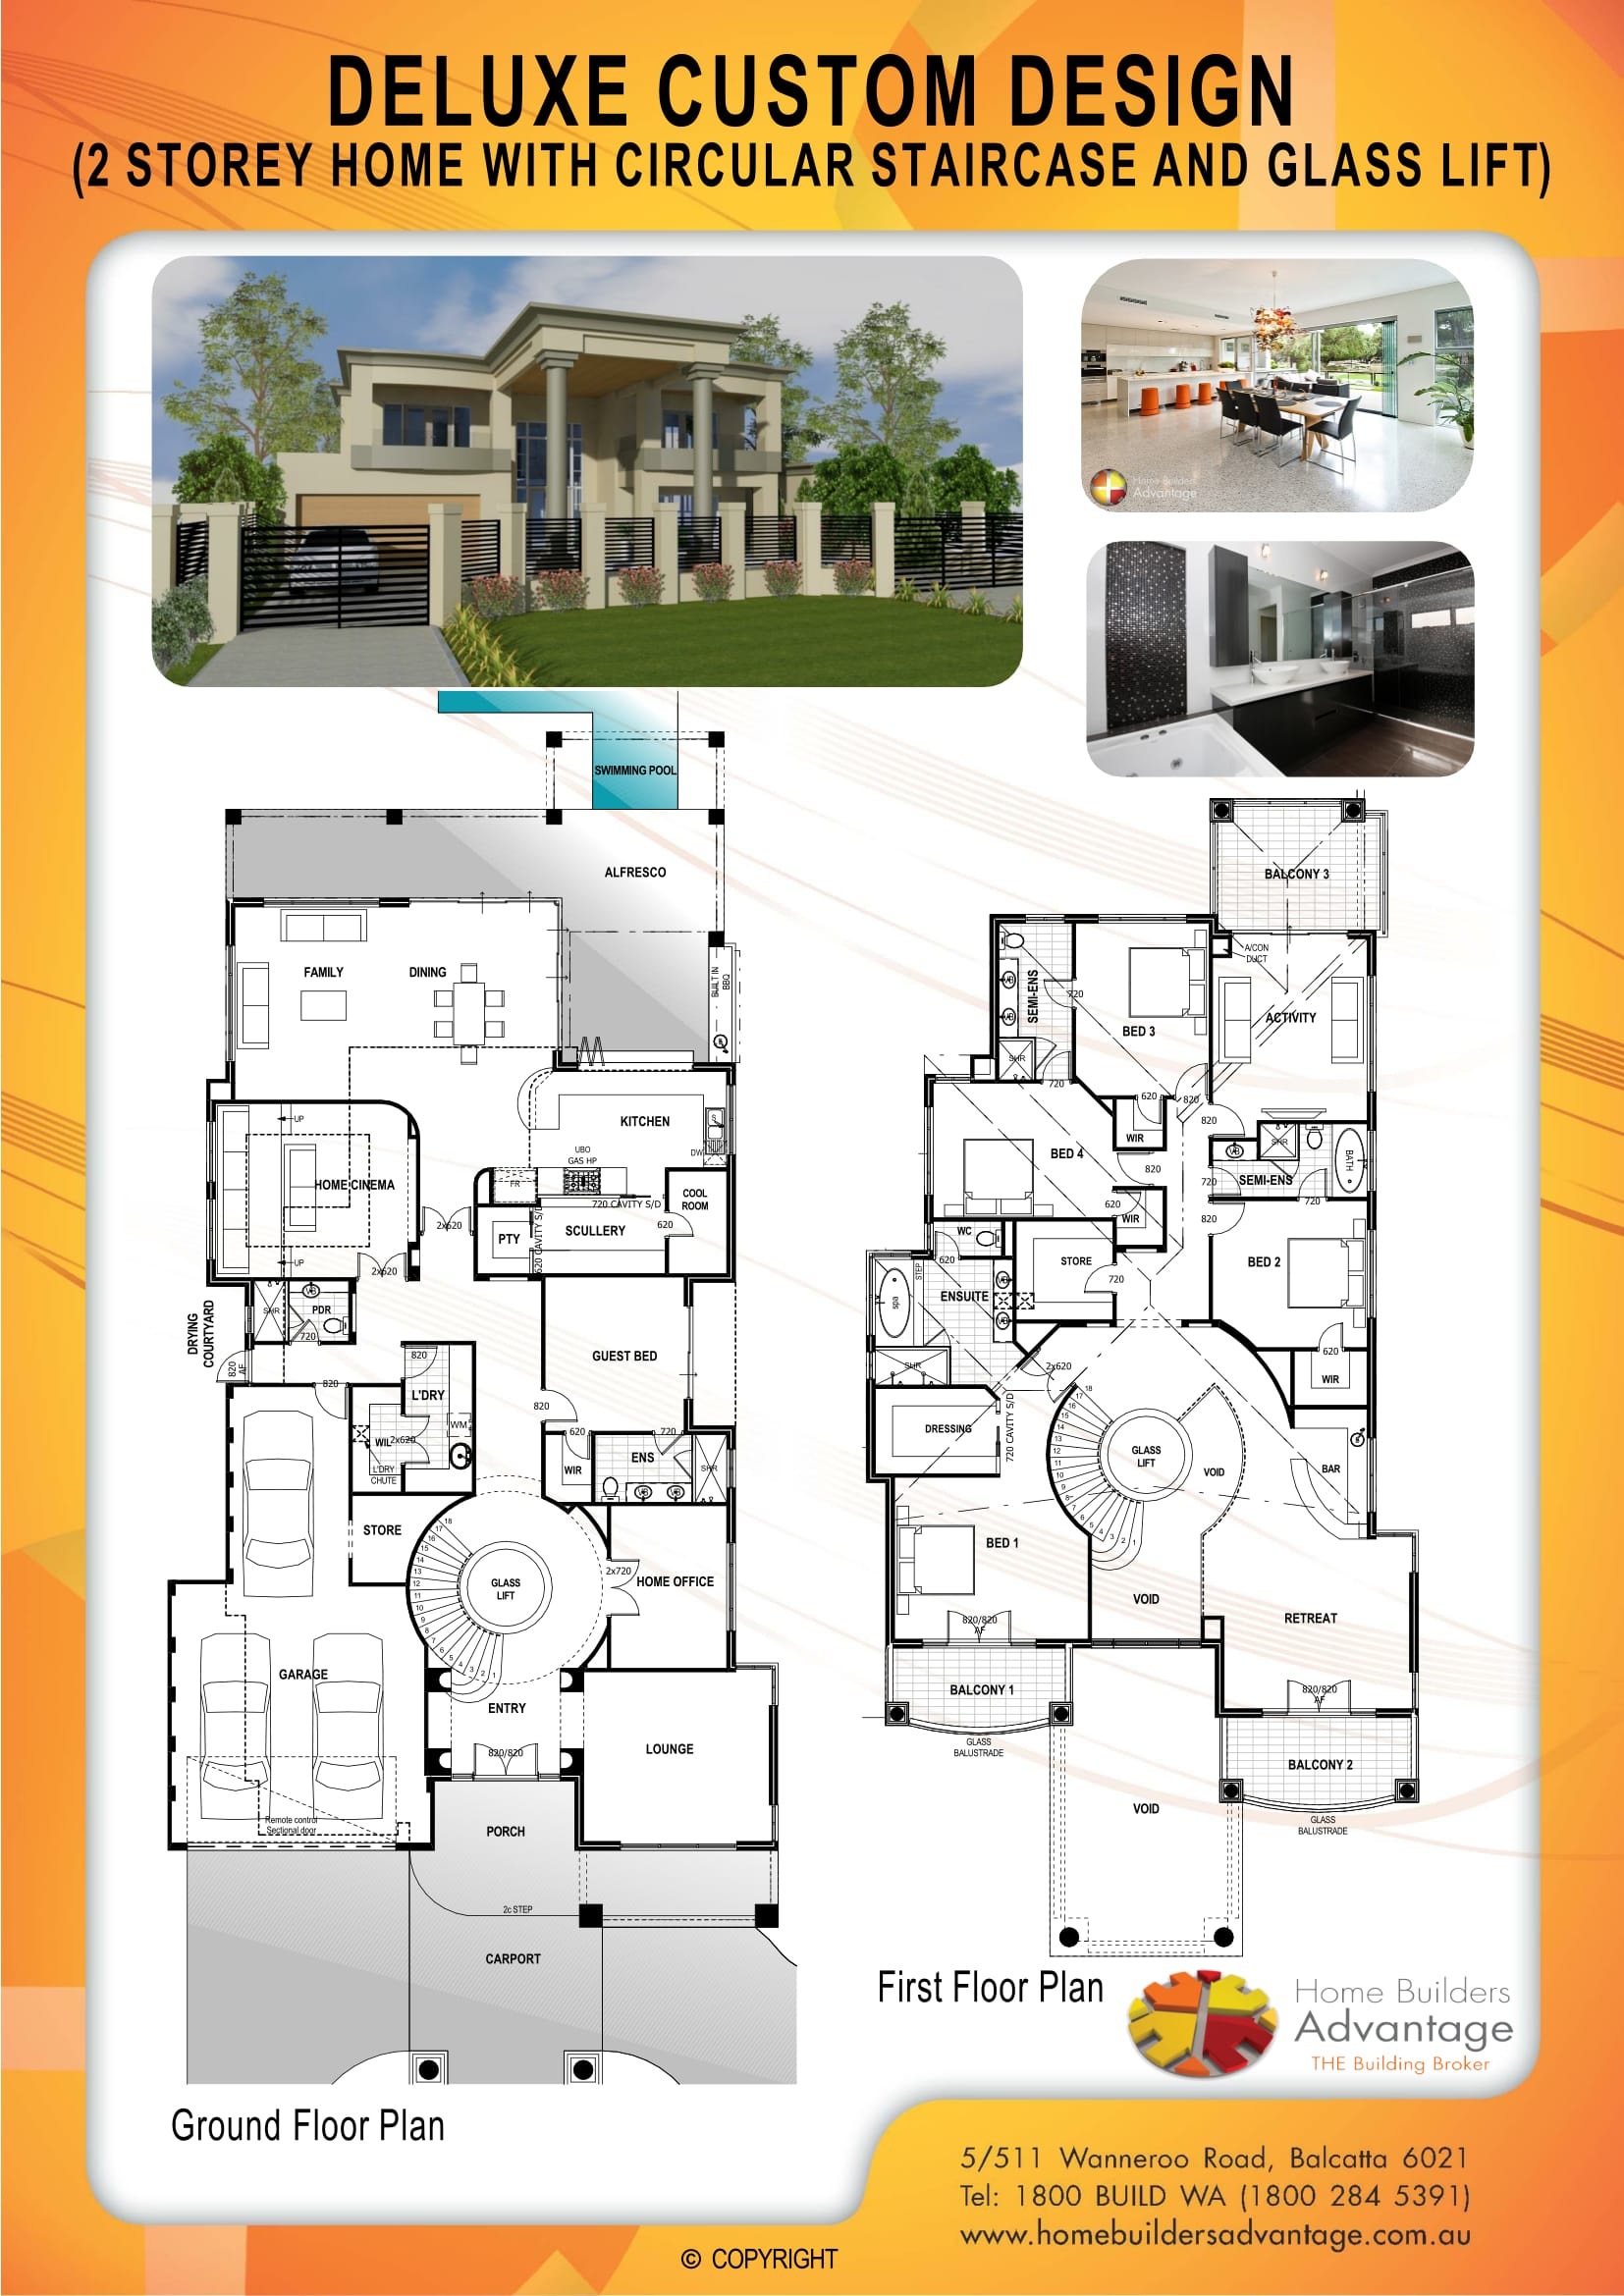 Deluxe Custom Design (2 Storey Home With Circular Staircase And Glass Lift)-1